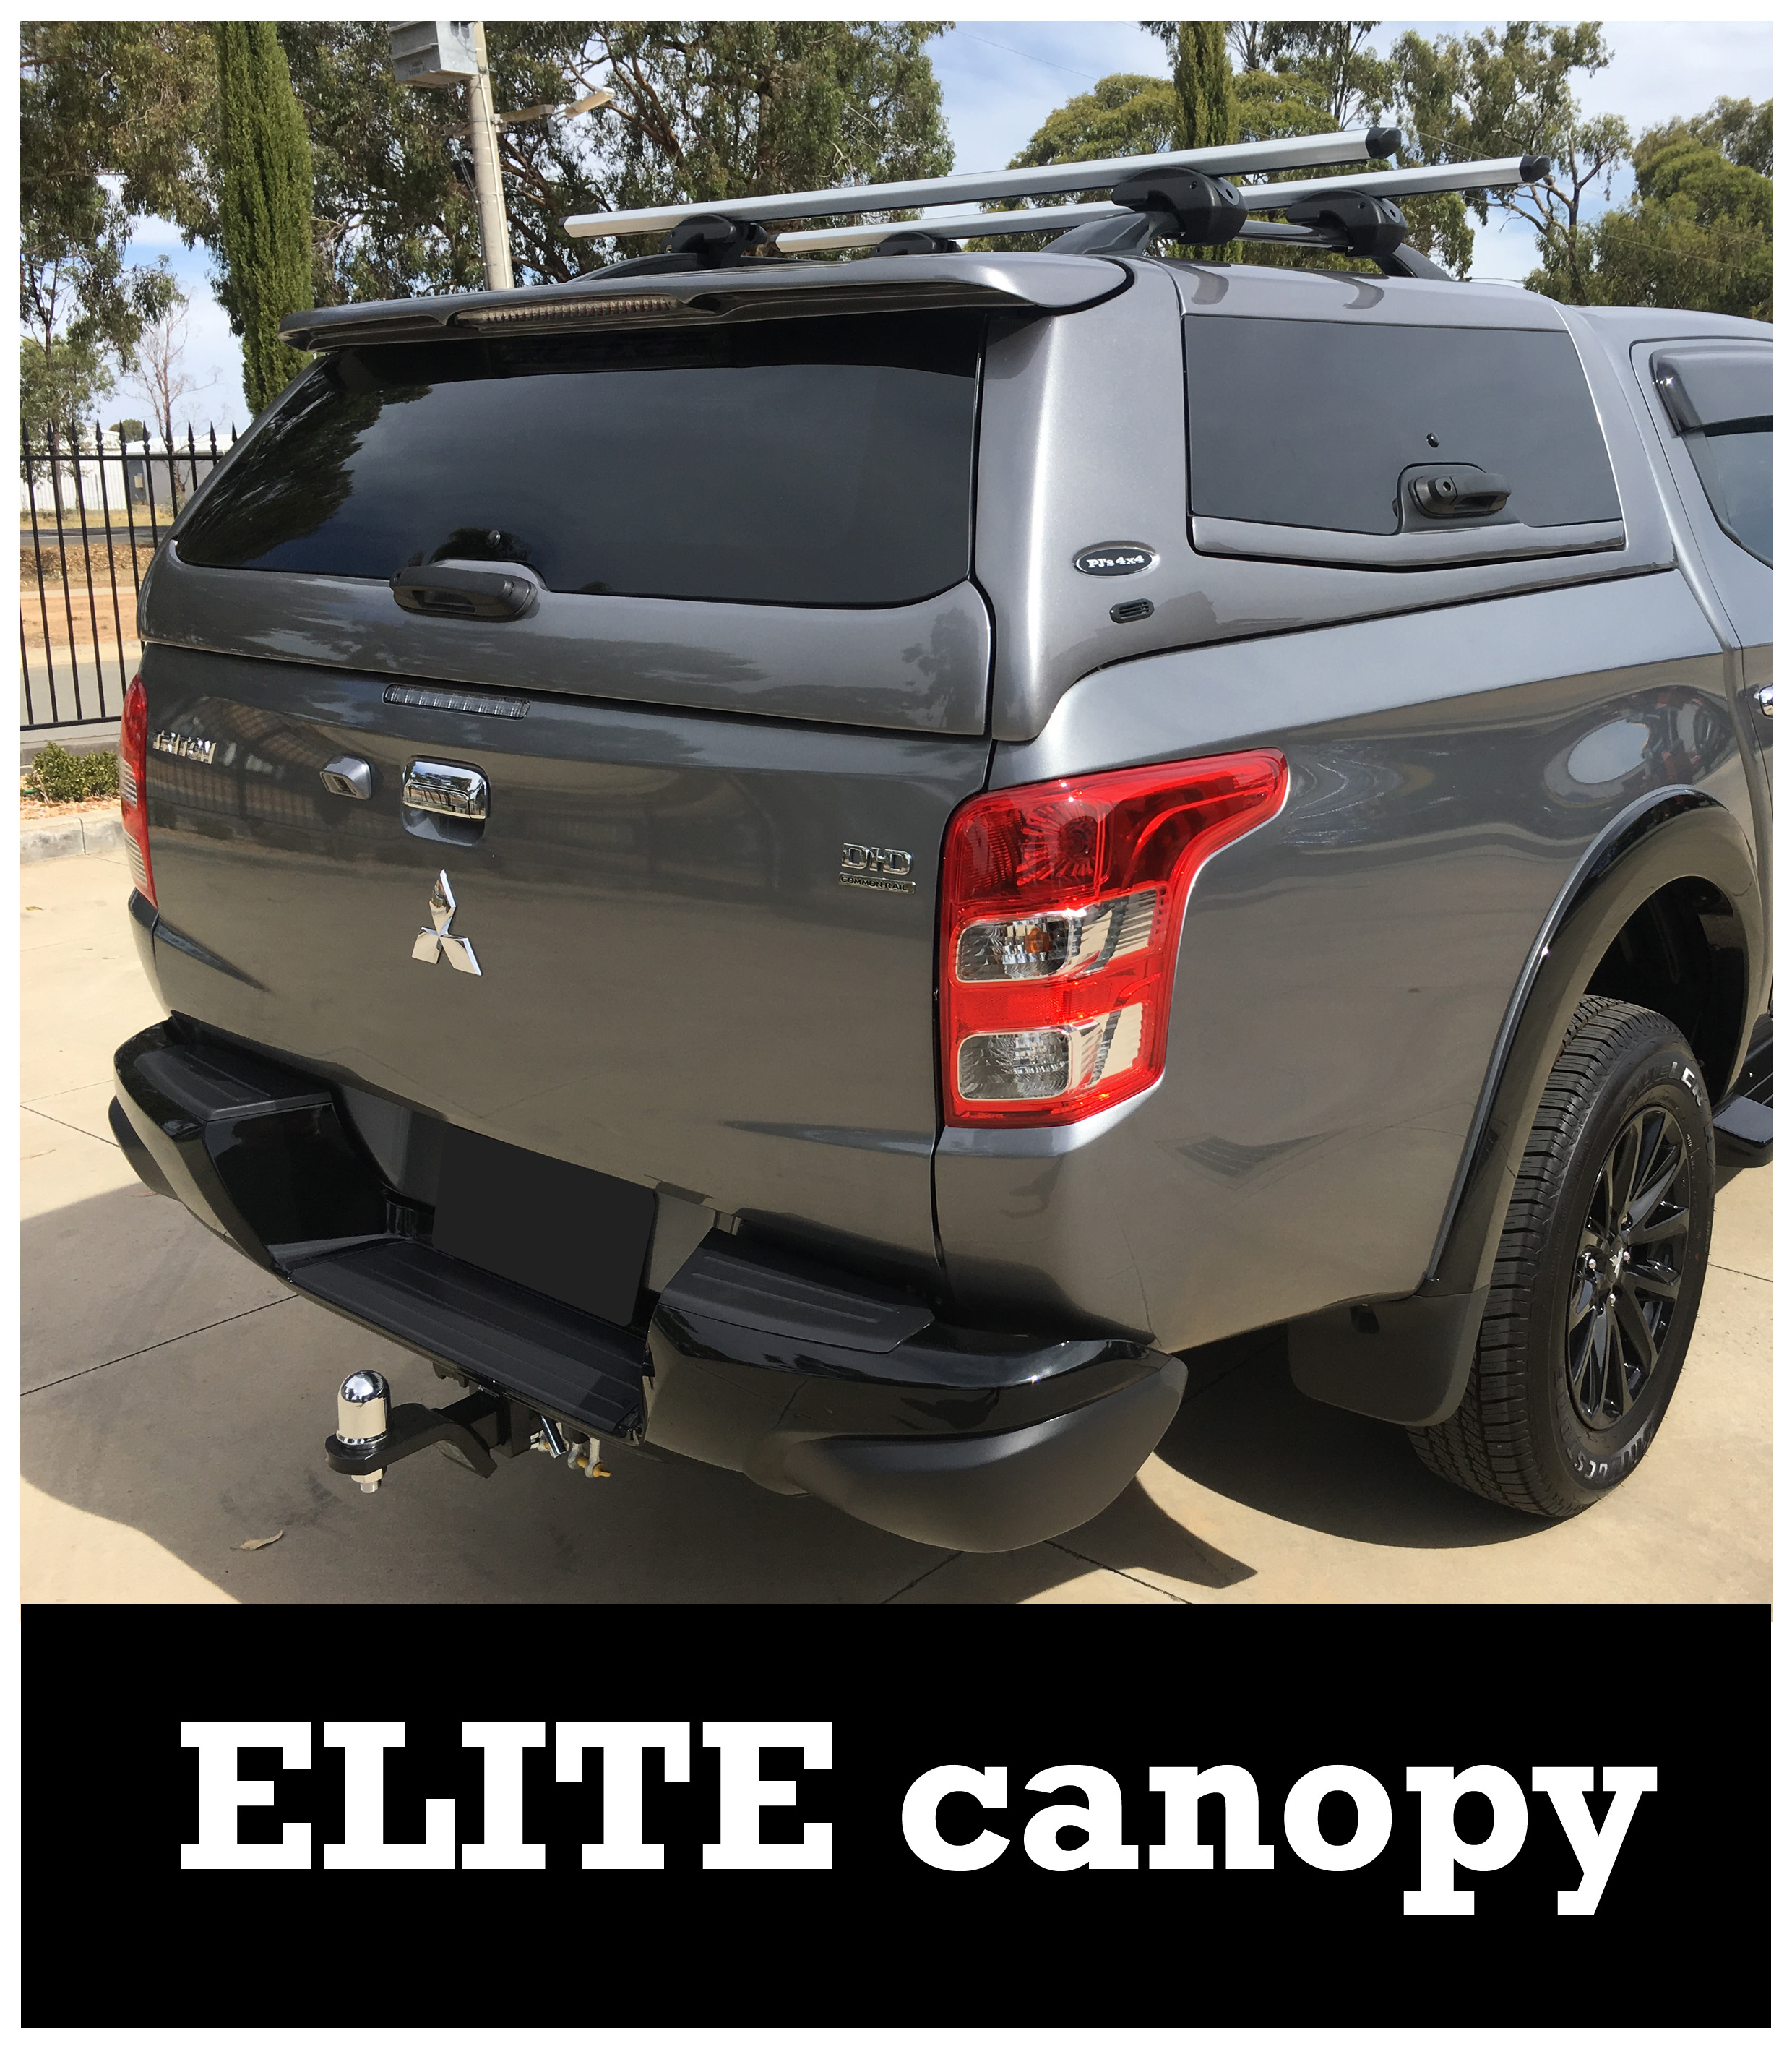 WEbsite_Triton_ELITE Canopy_Thumbnail_edited-1.jpg